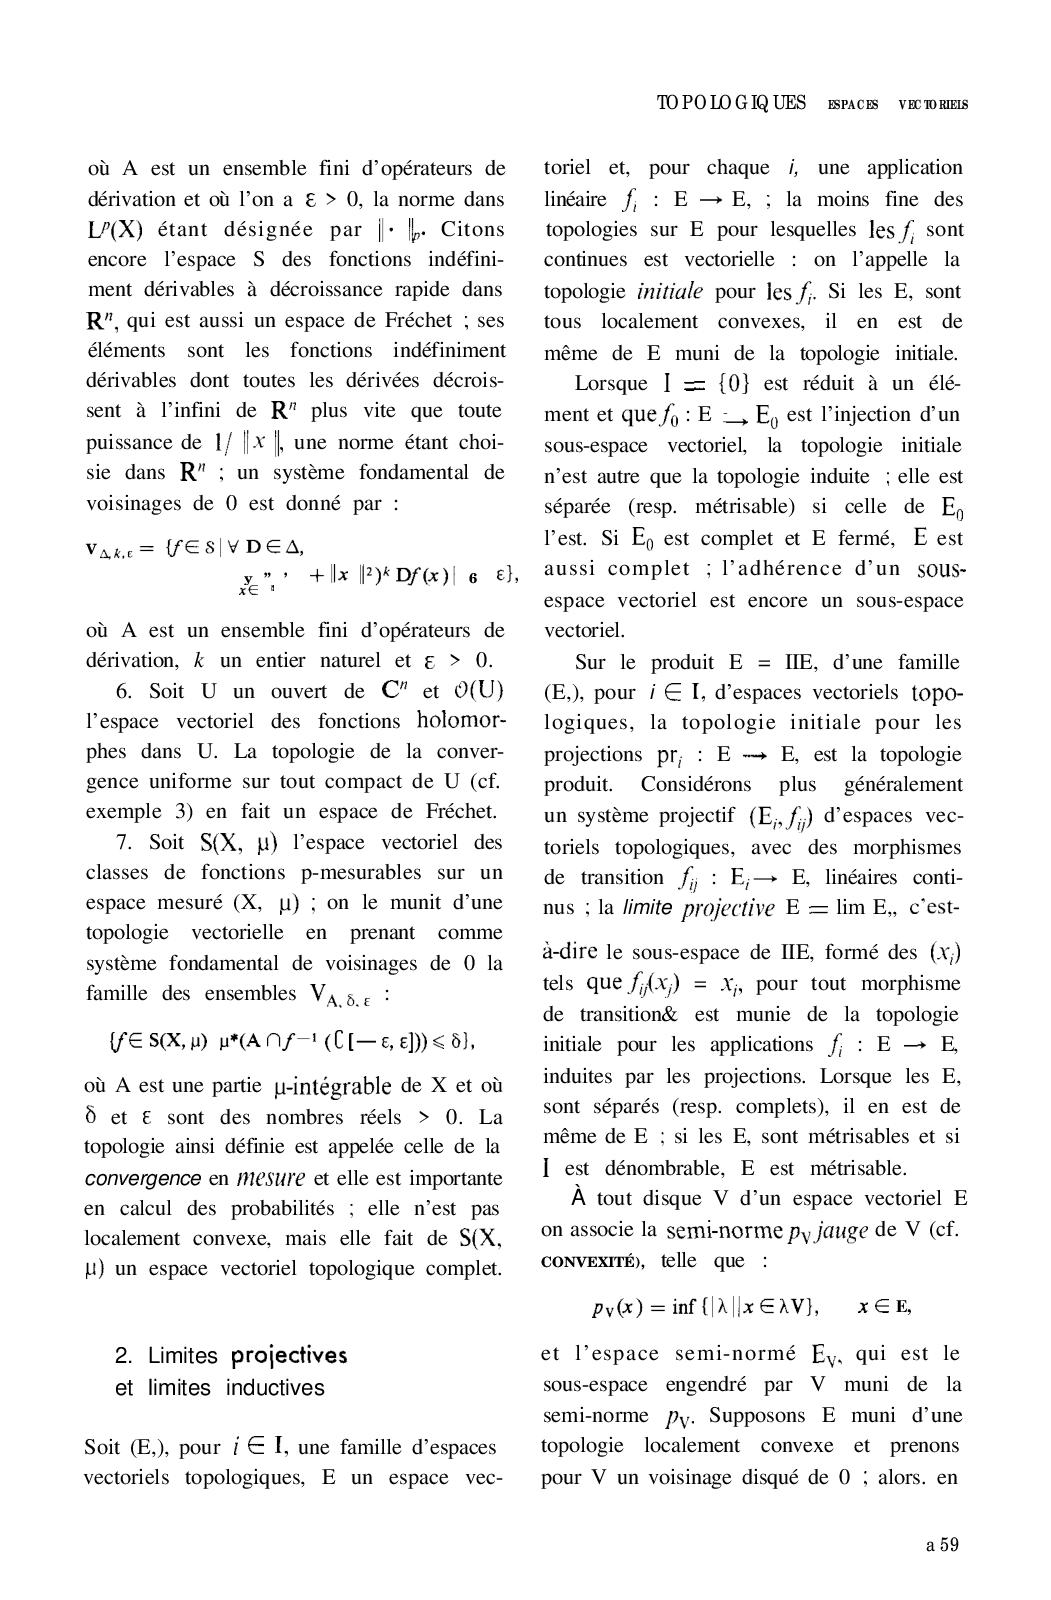 Page 857